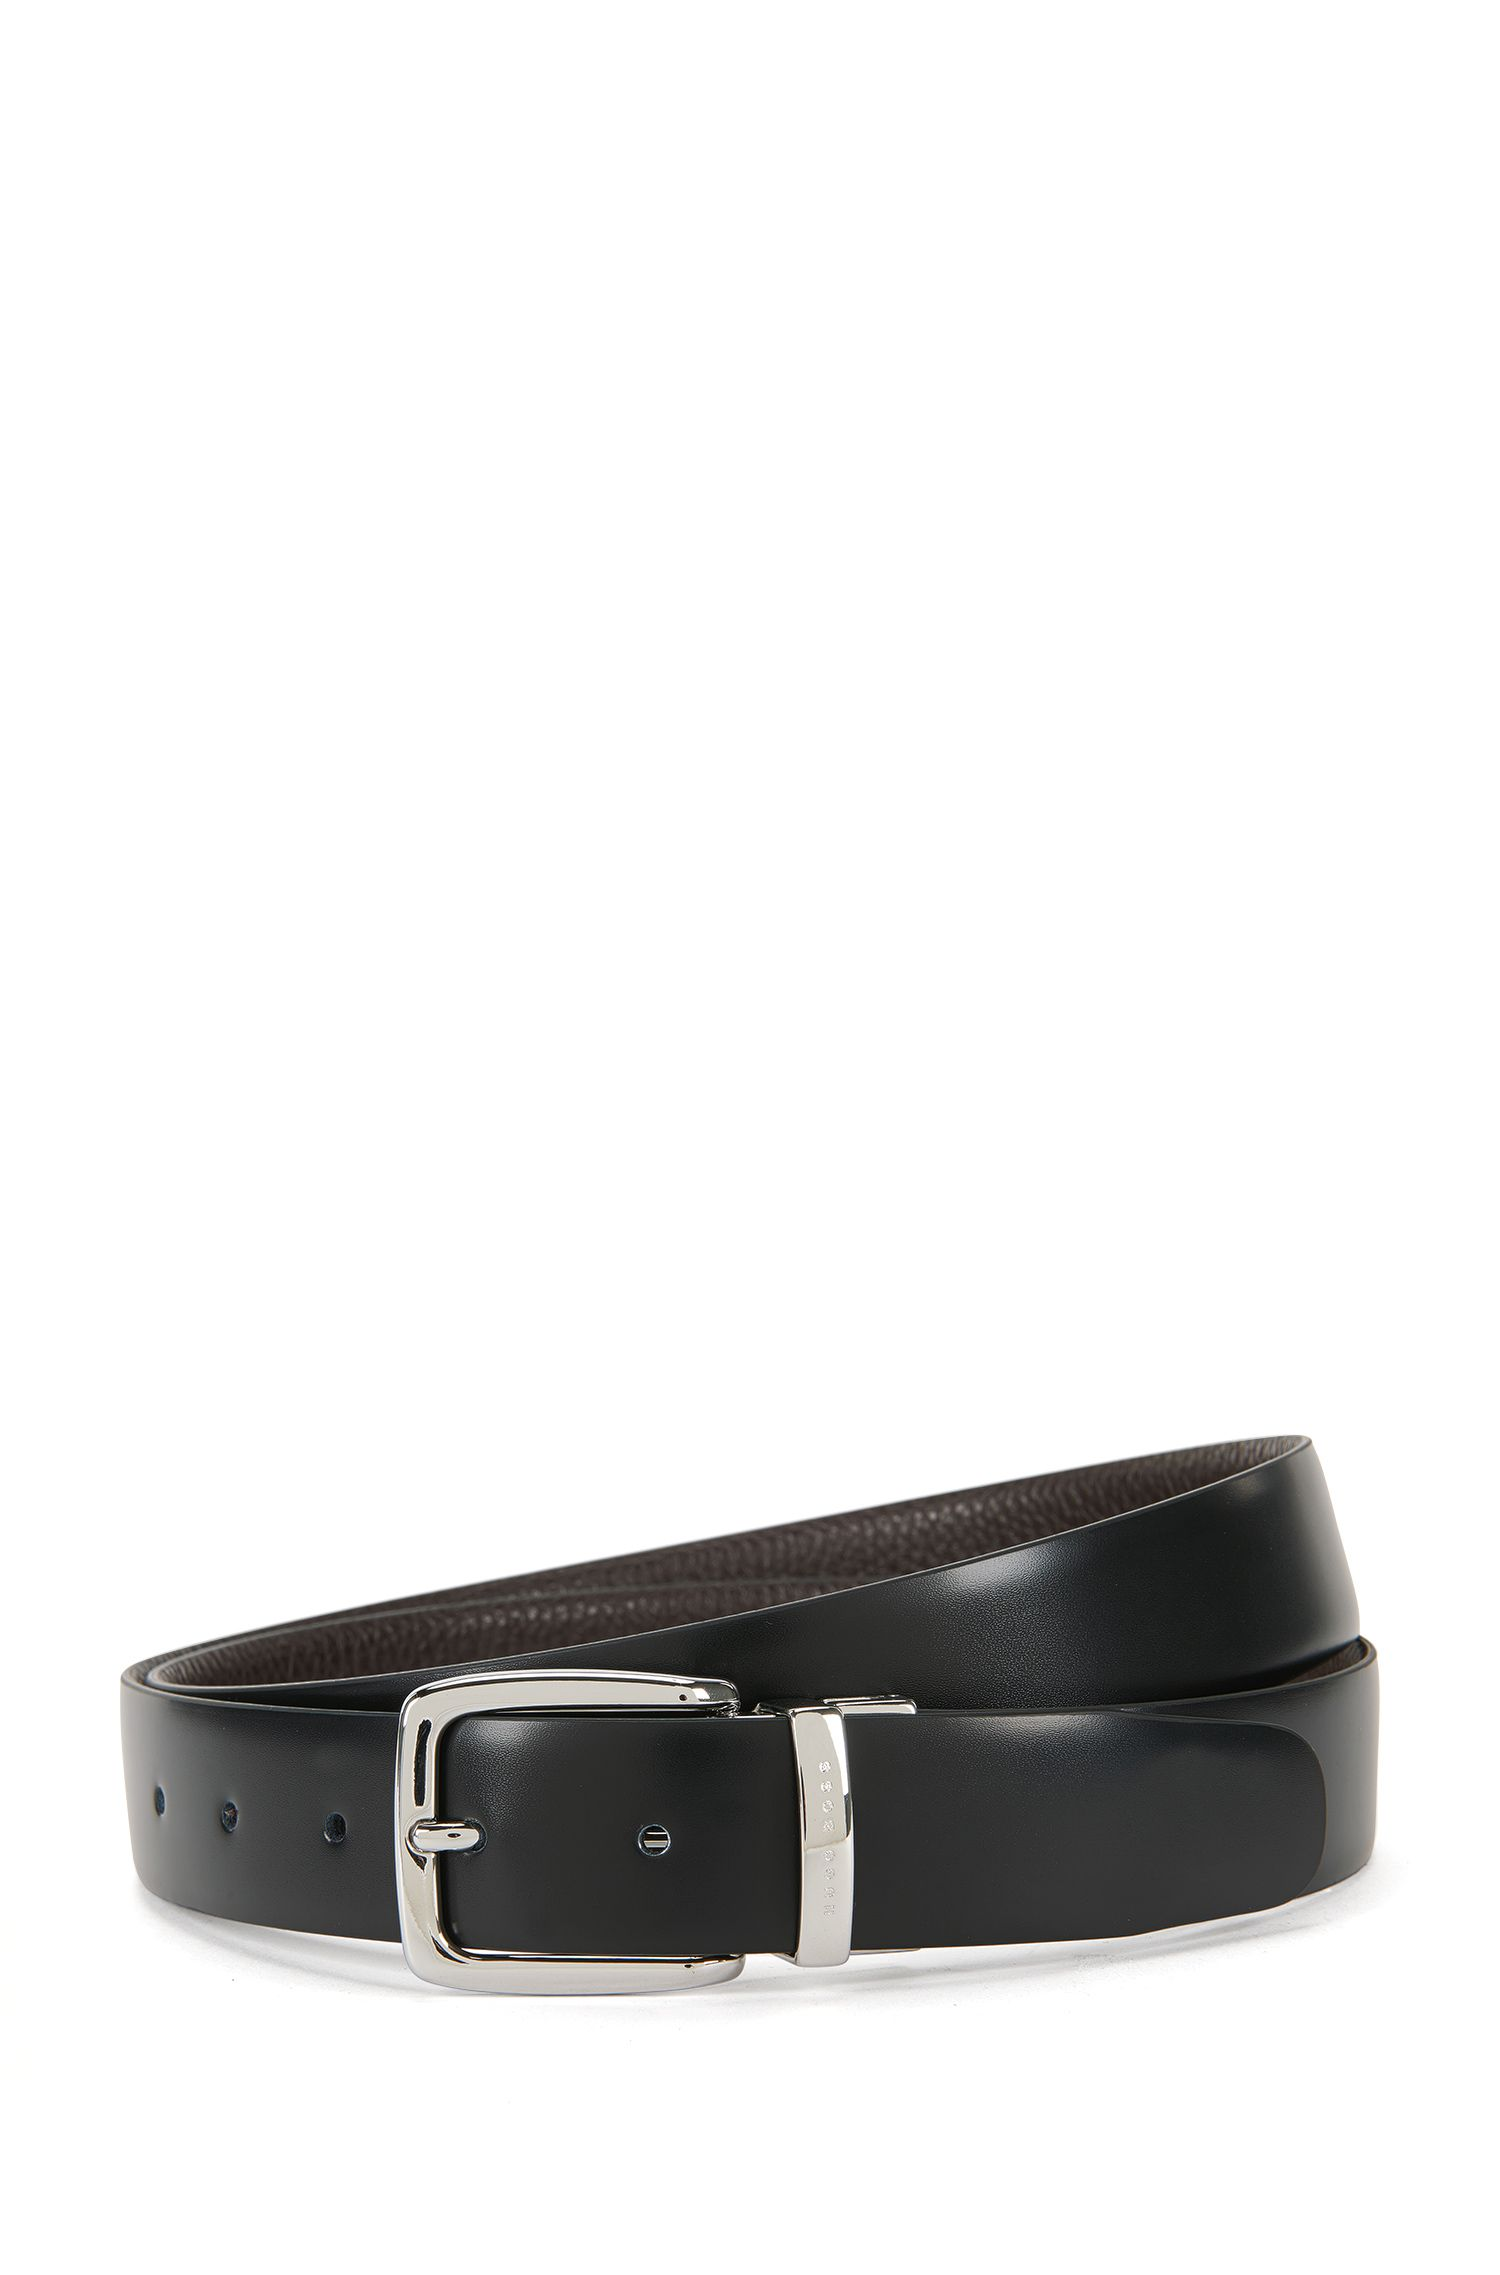 'Omartin' | Italian Leather Reversible Belt